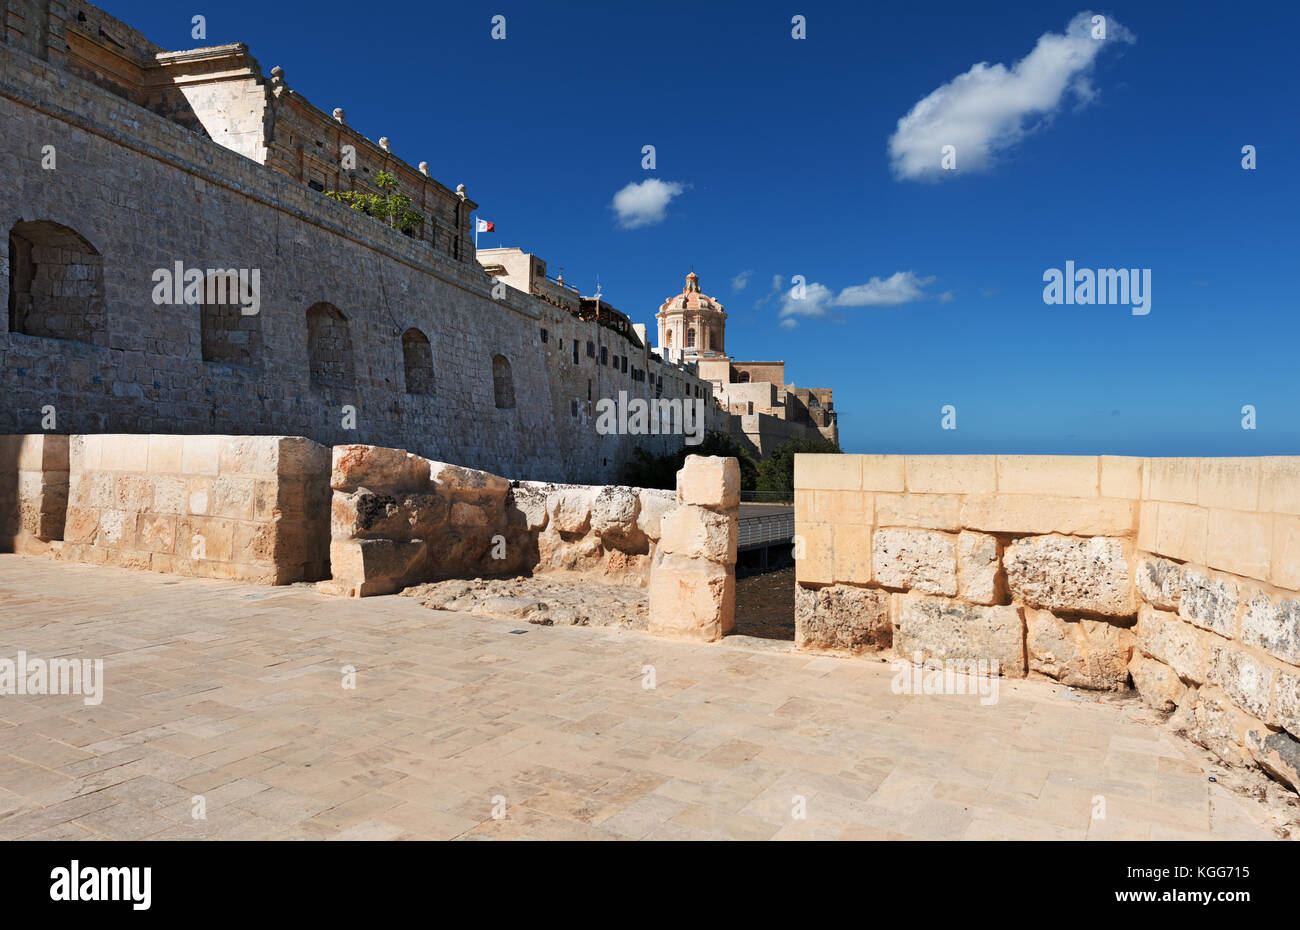 Mdina city on Malta - Stock Image